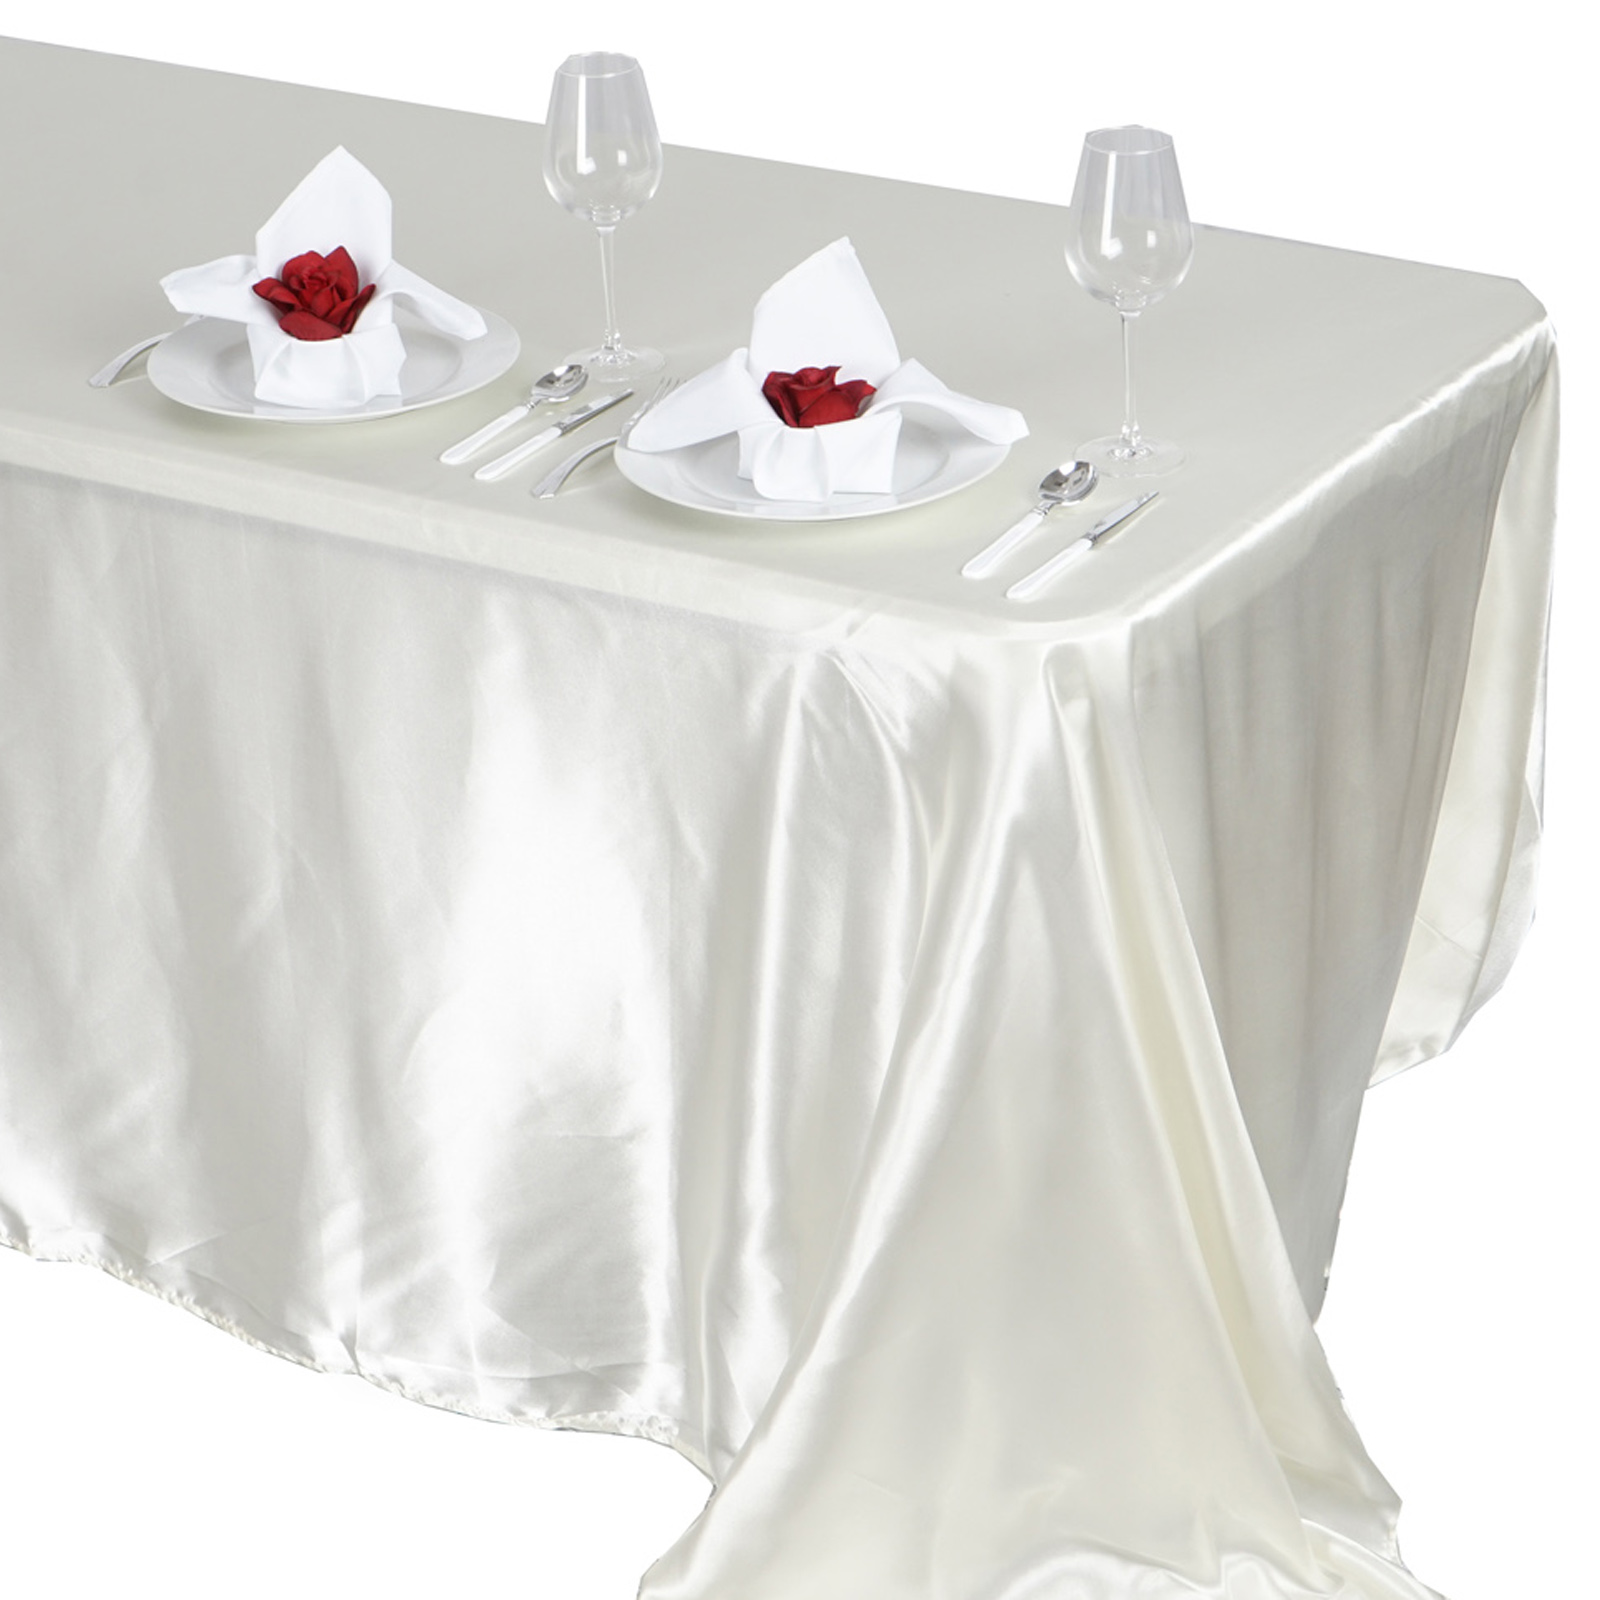 90x132-034-Rectangle-Satin-Tablecloth-For-Wedding-Party-Banquet-Events-Decoration thumbnail 50